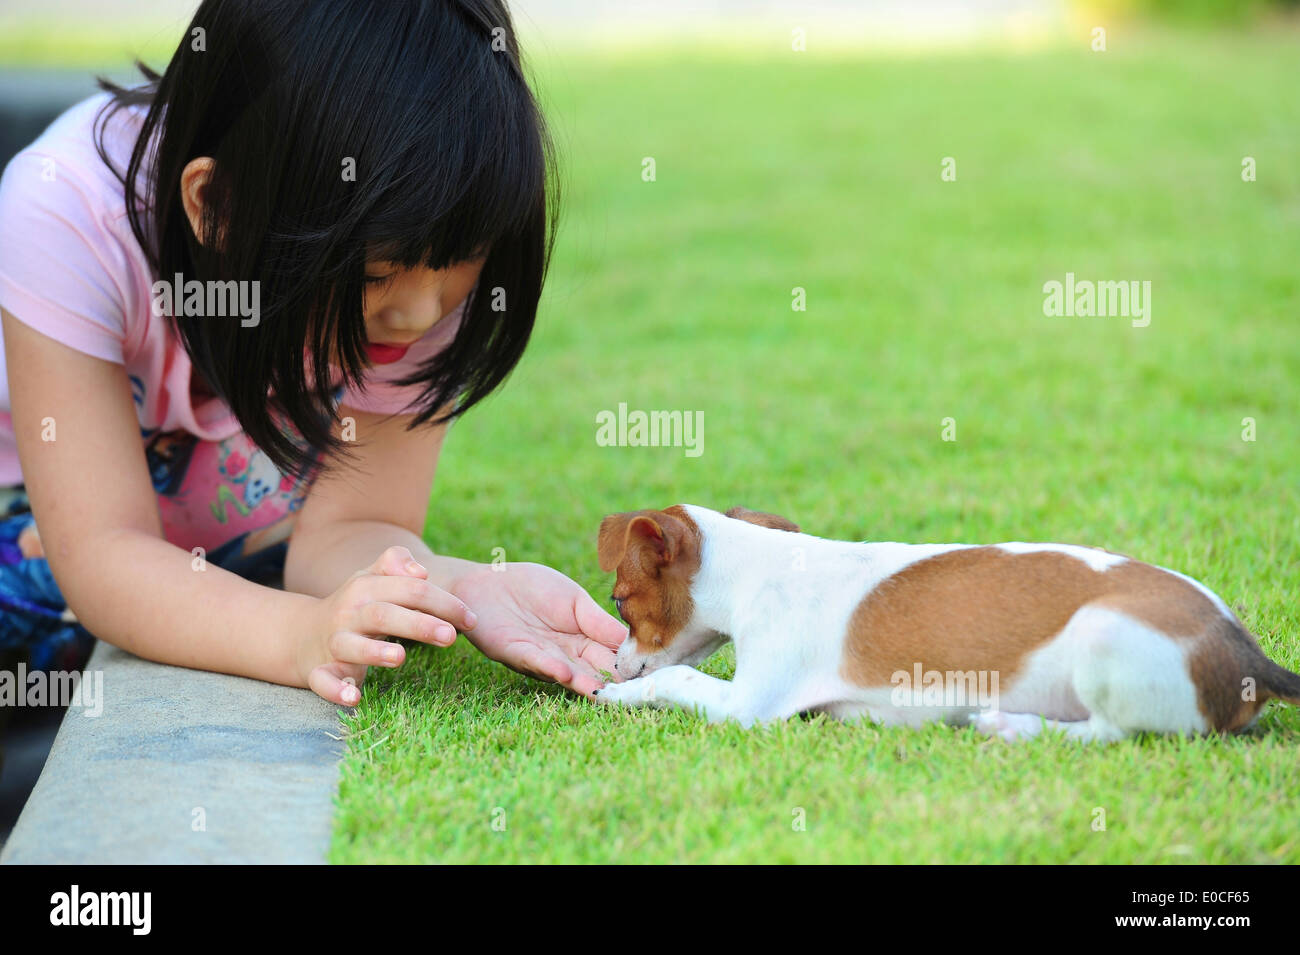 girl giving a dog snack - Stock Image